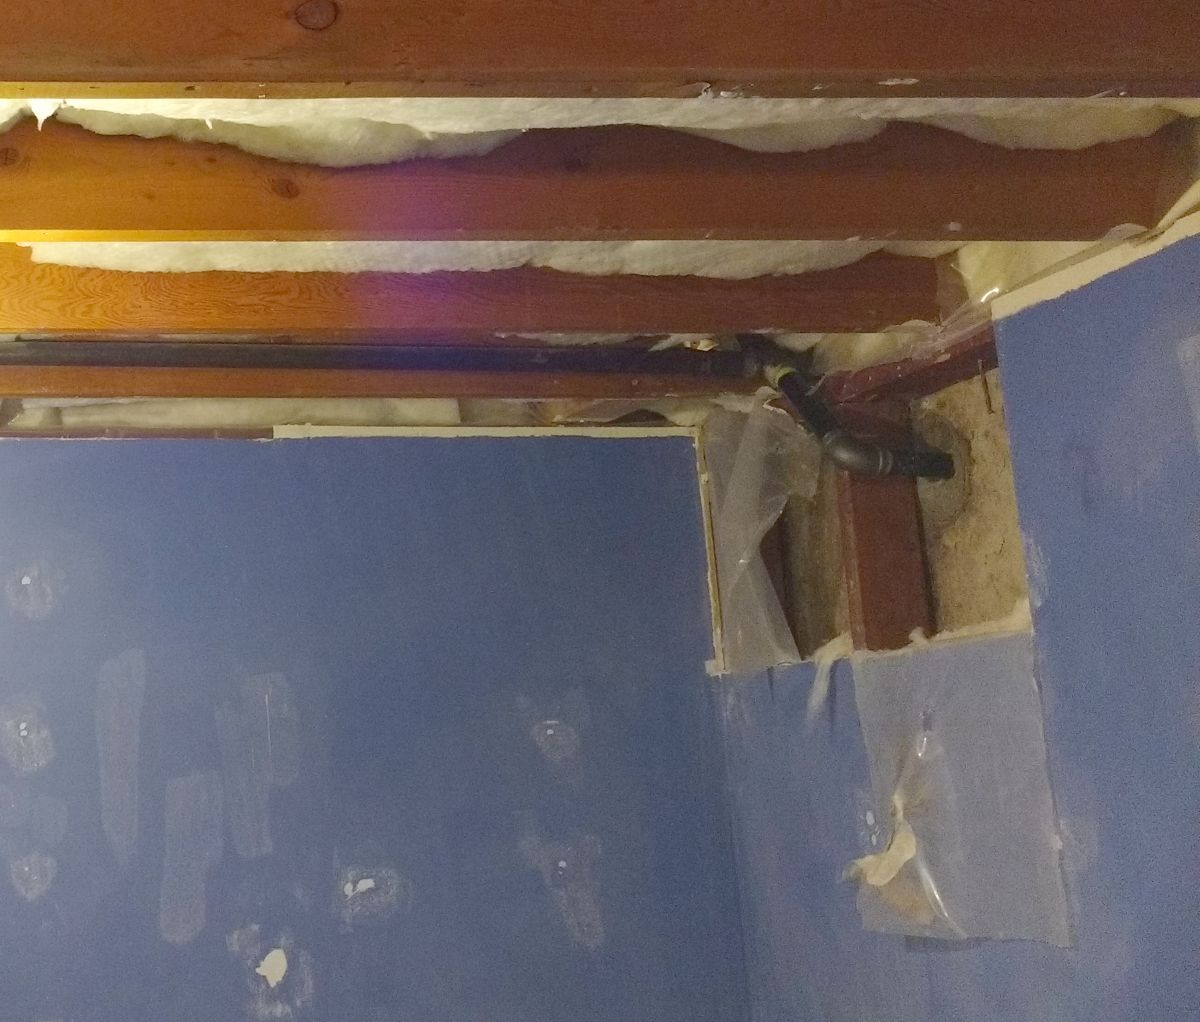 Sweating gas pipe on inside wall (anyway to stop it?)-img_20171208_135209977.jpg